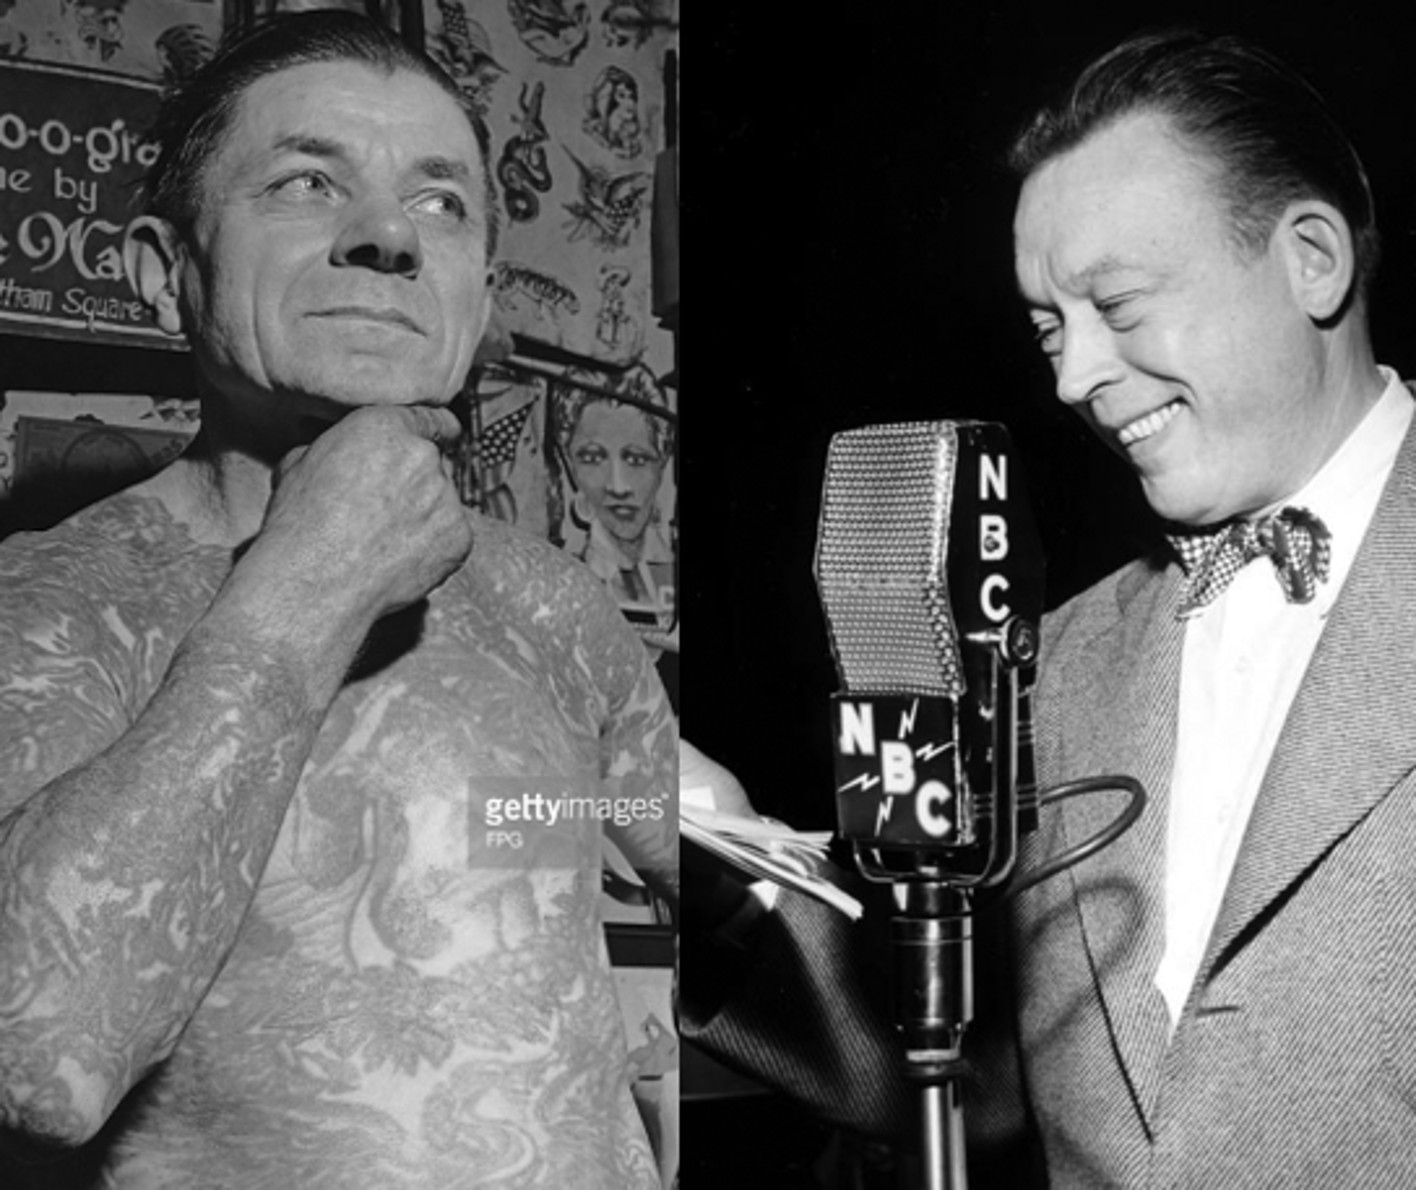 Wagner, Tattooer, Quips with Fred Allen